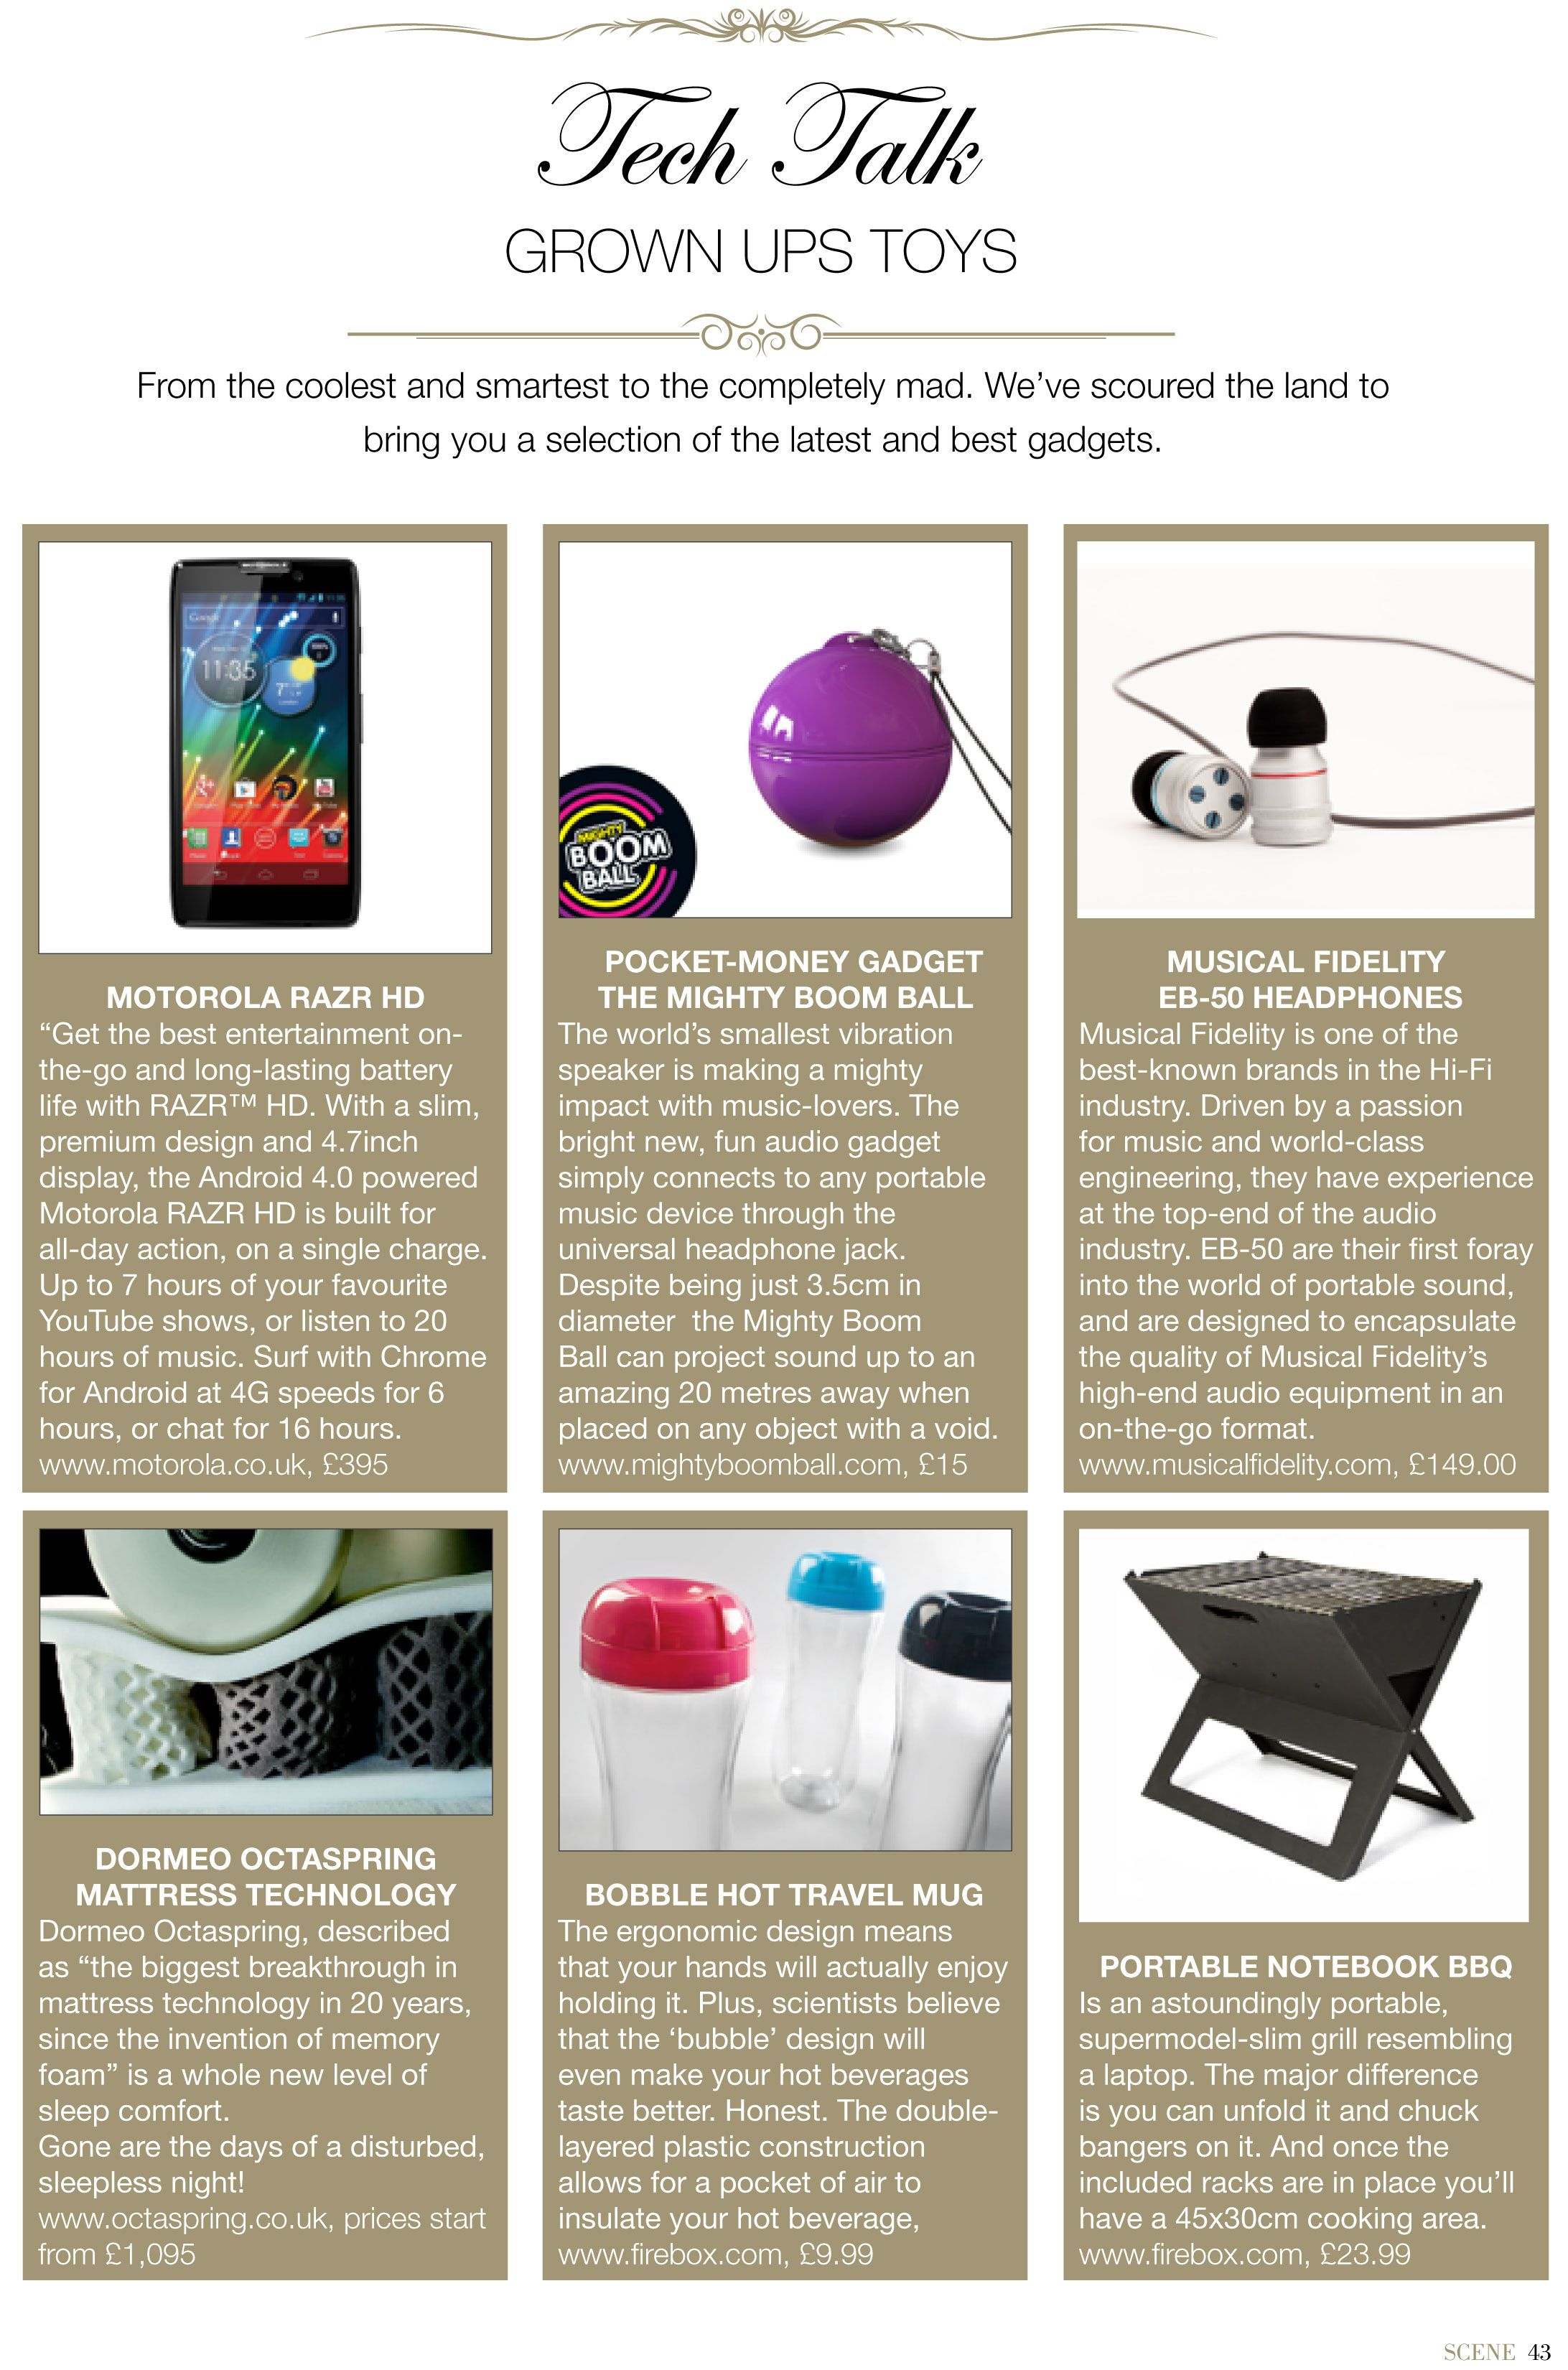 Octaspring was featured in the Tech Talk section of April's edition of Scene Magazine